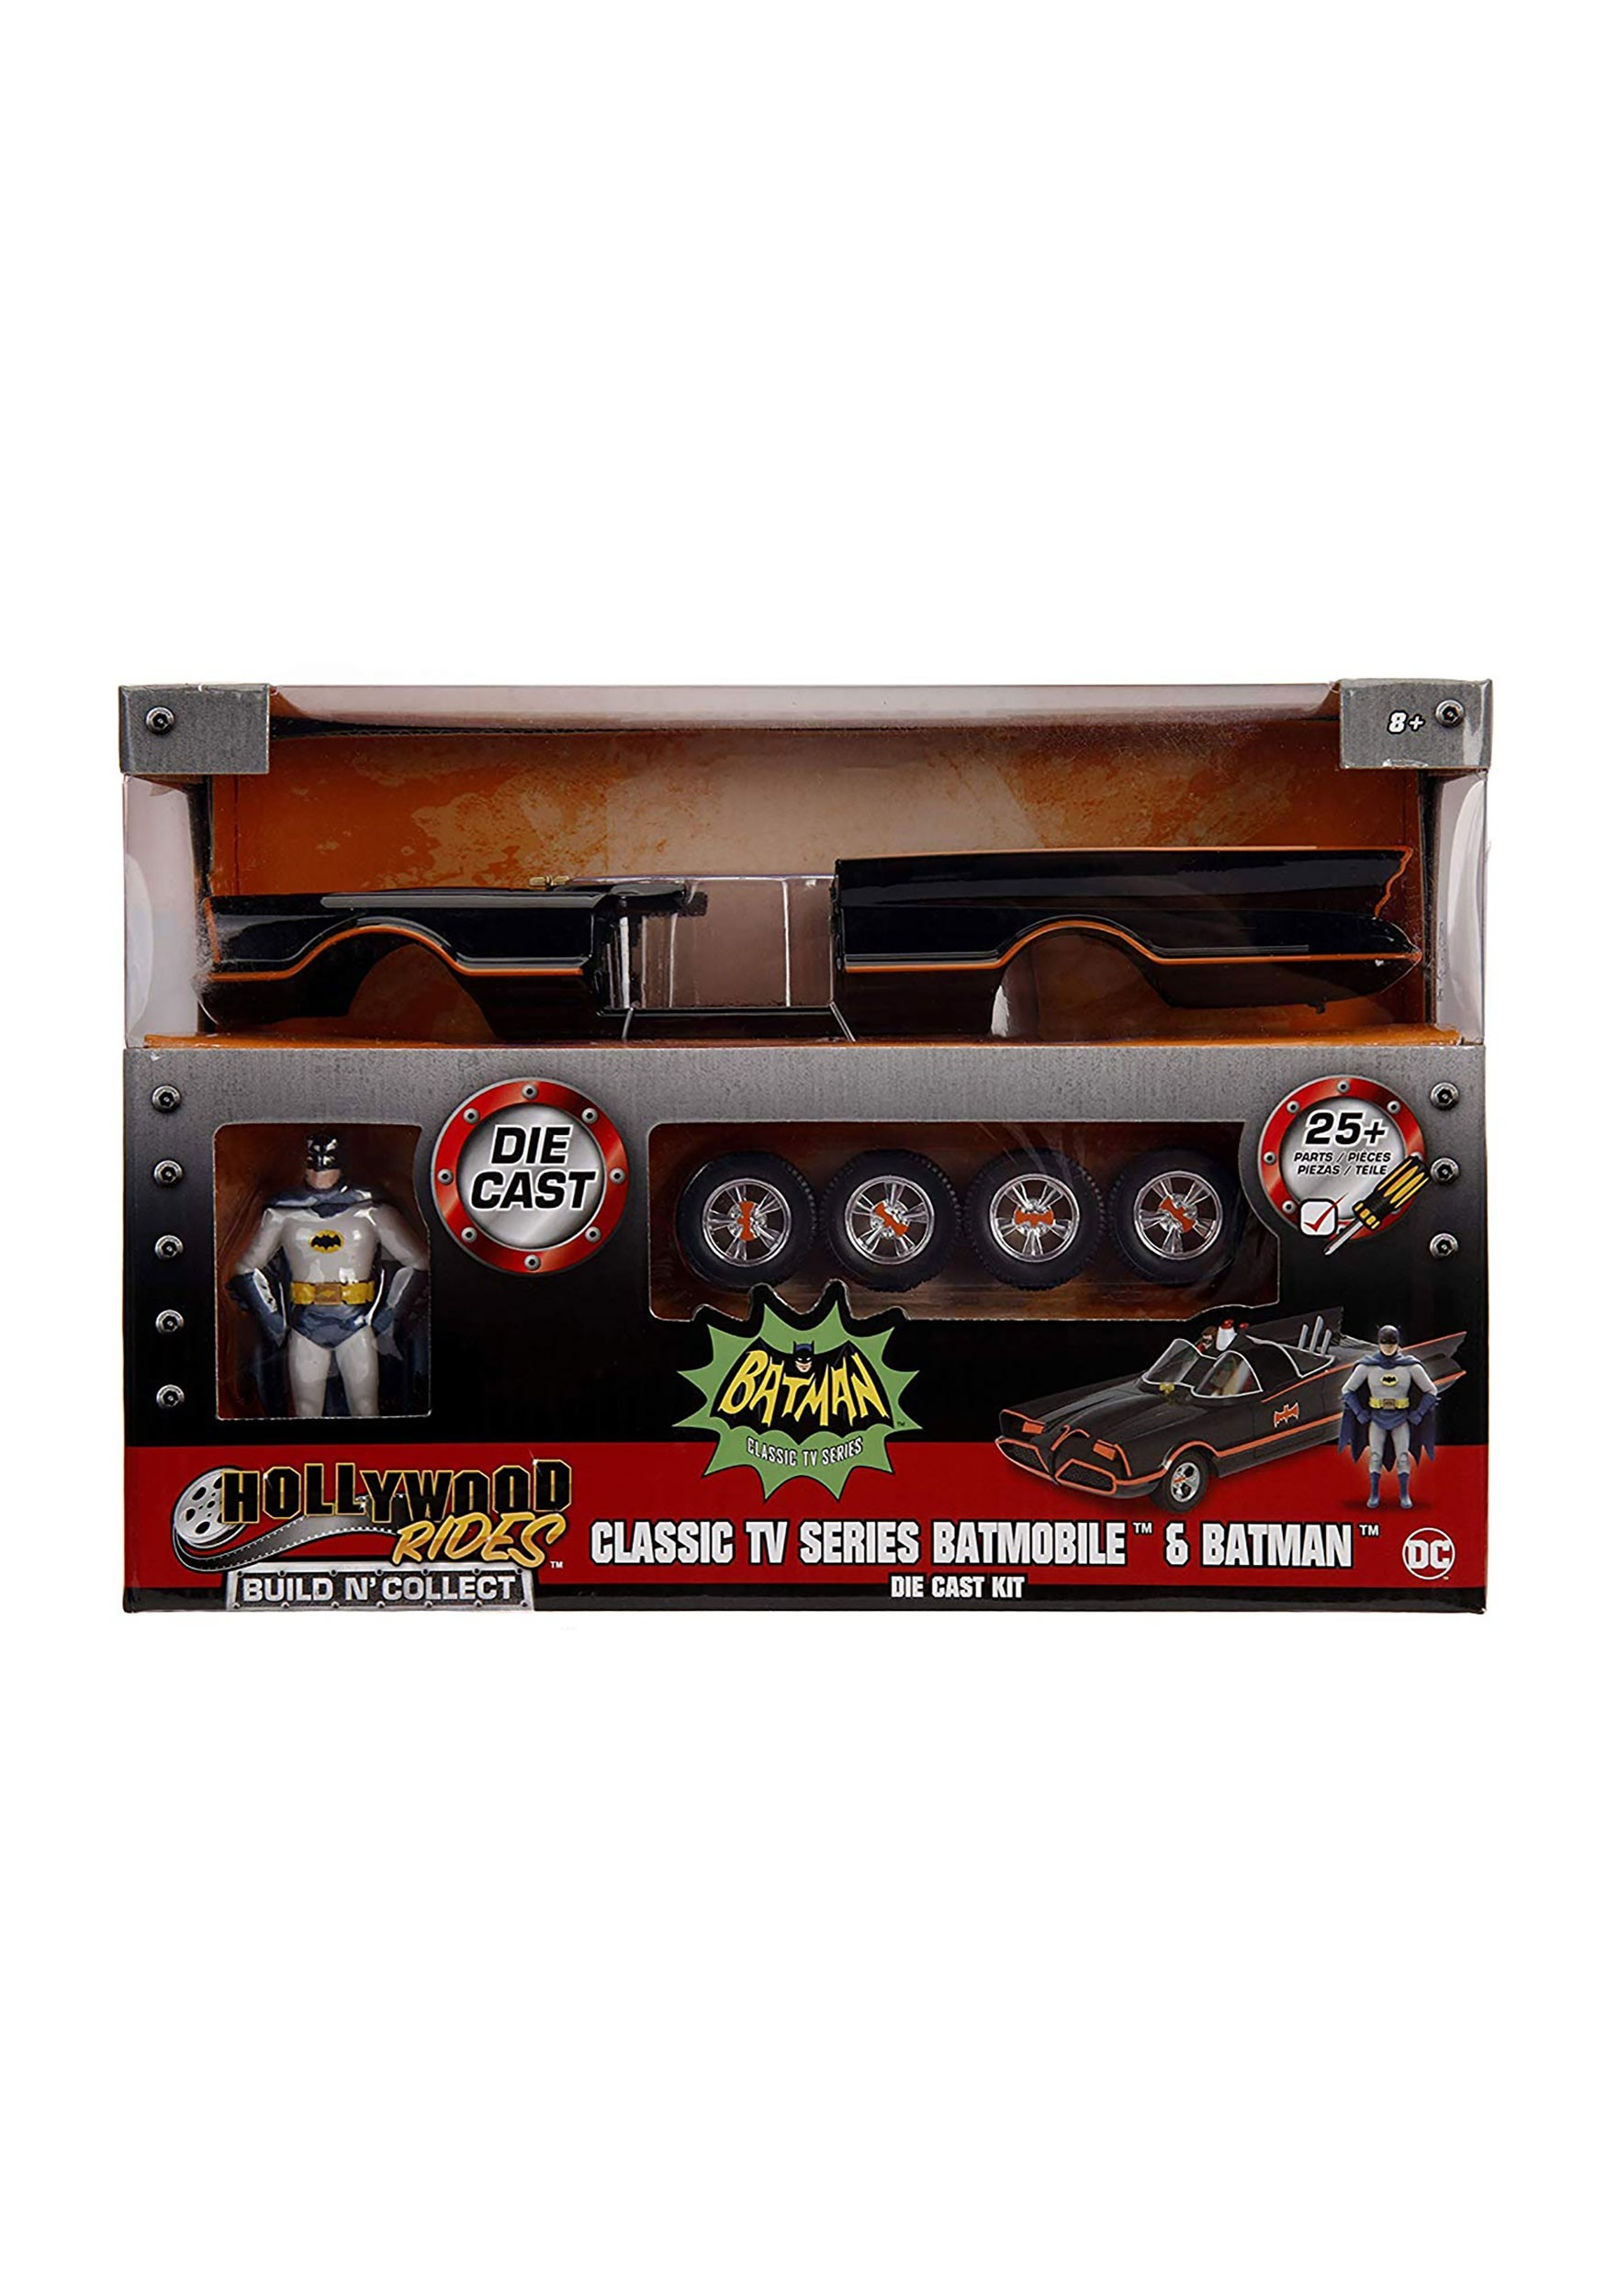 Batmobile from 1966 Classic TV Series Build N' Collect Kit